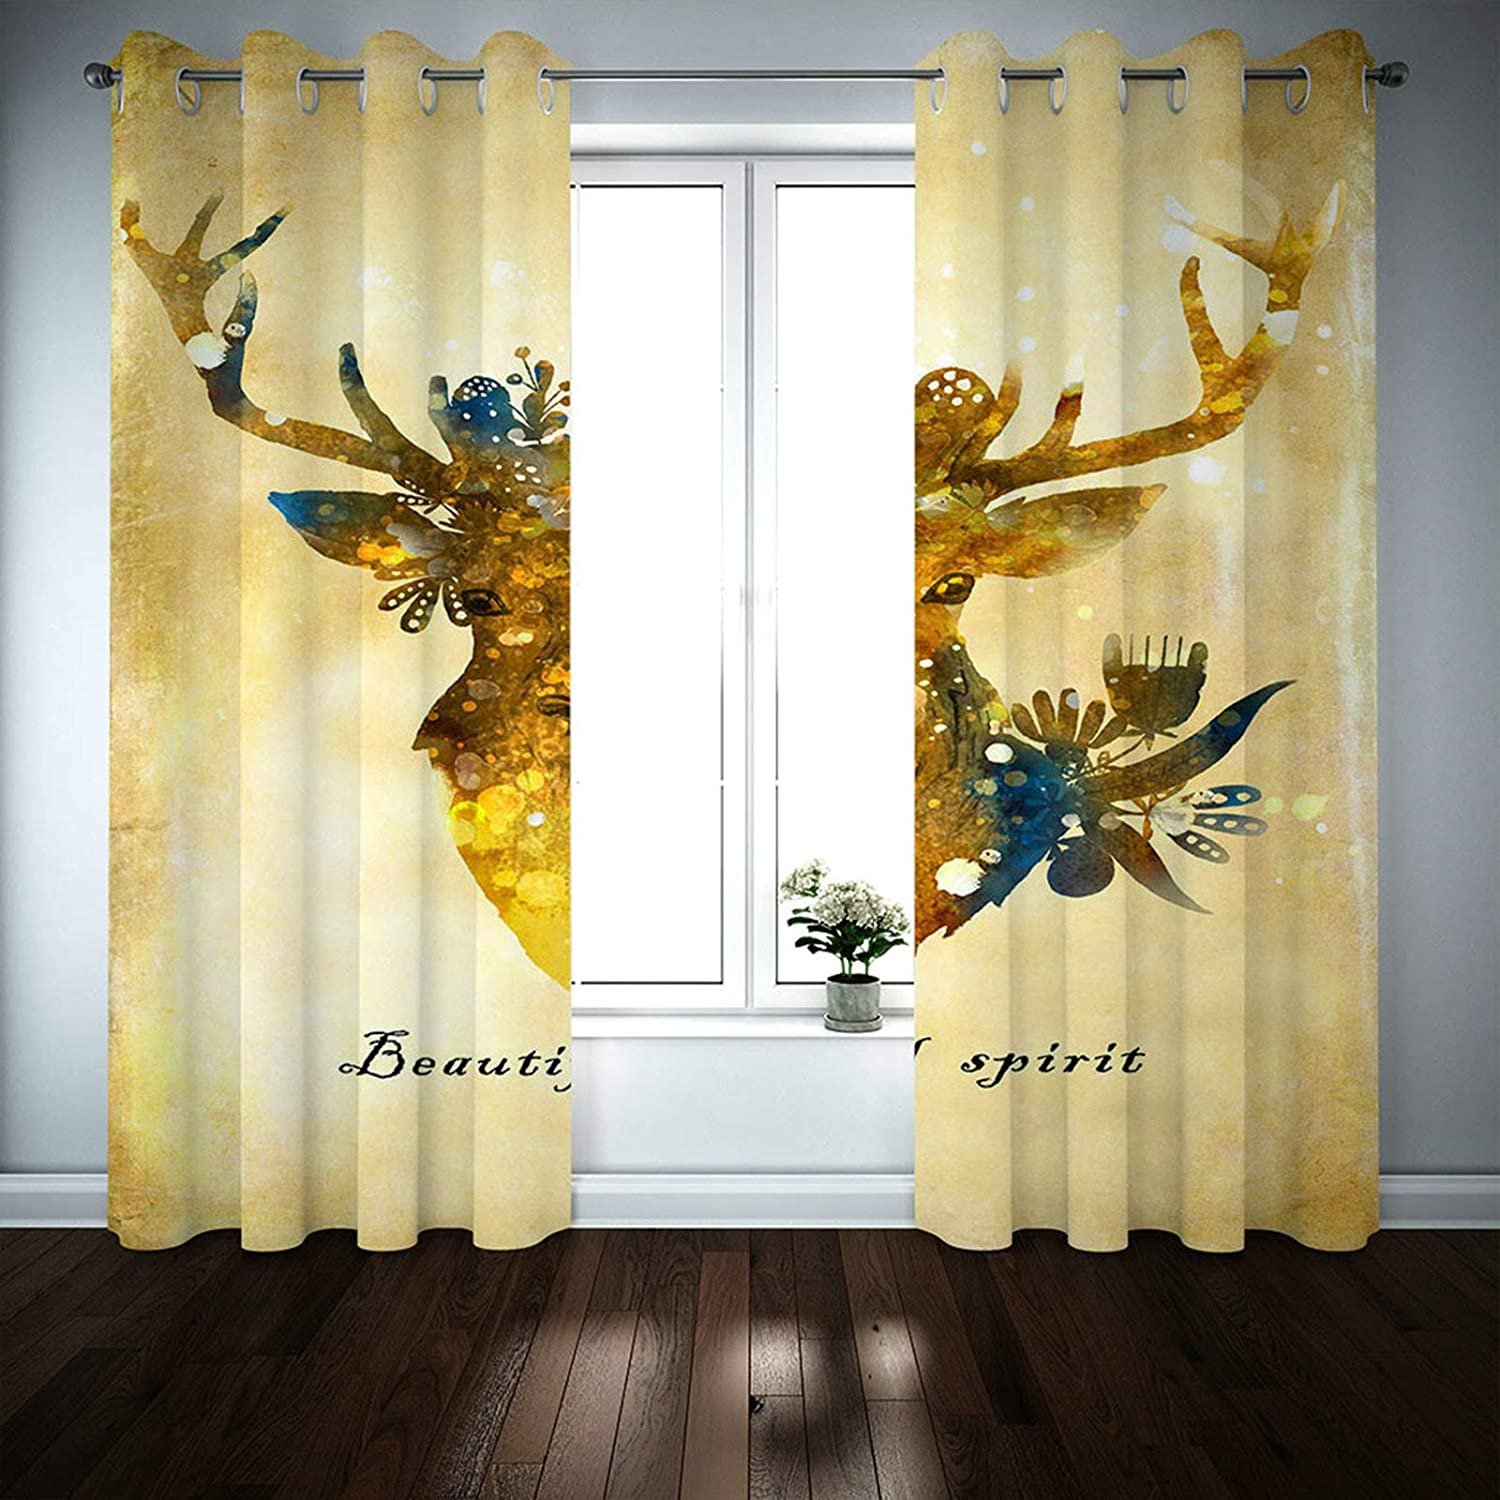 MoAndy Cheap mail order shopping Colorful Blackout Curtains Manufacturer regenerated product Set of 45 x 2 Inch 52 Panels